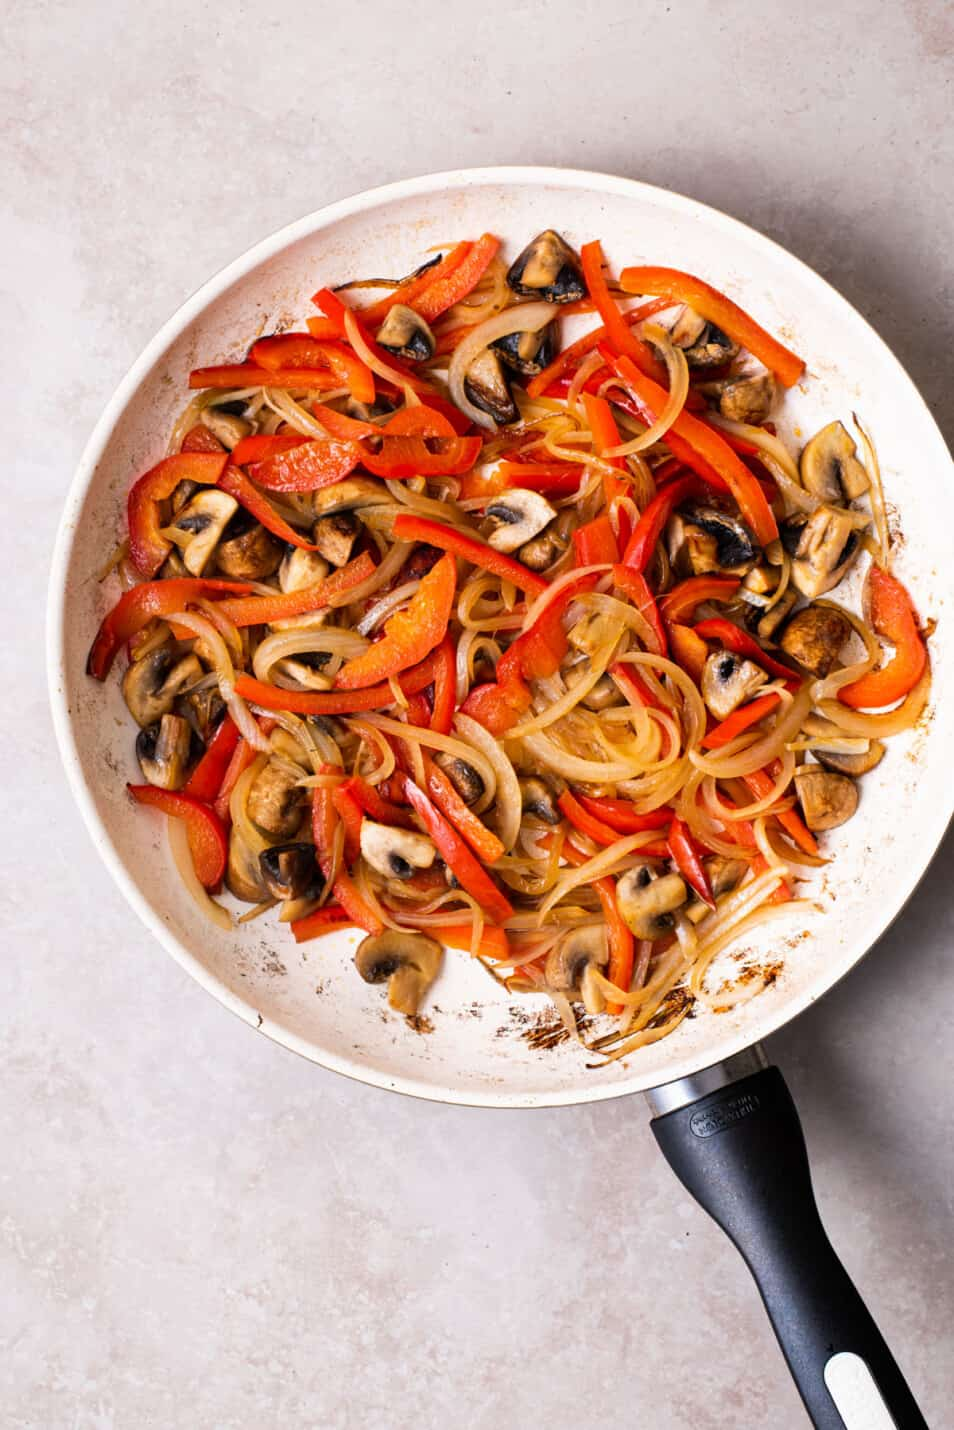 Sauteed peppers, onions, and mushrooms in a skillet.